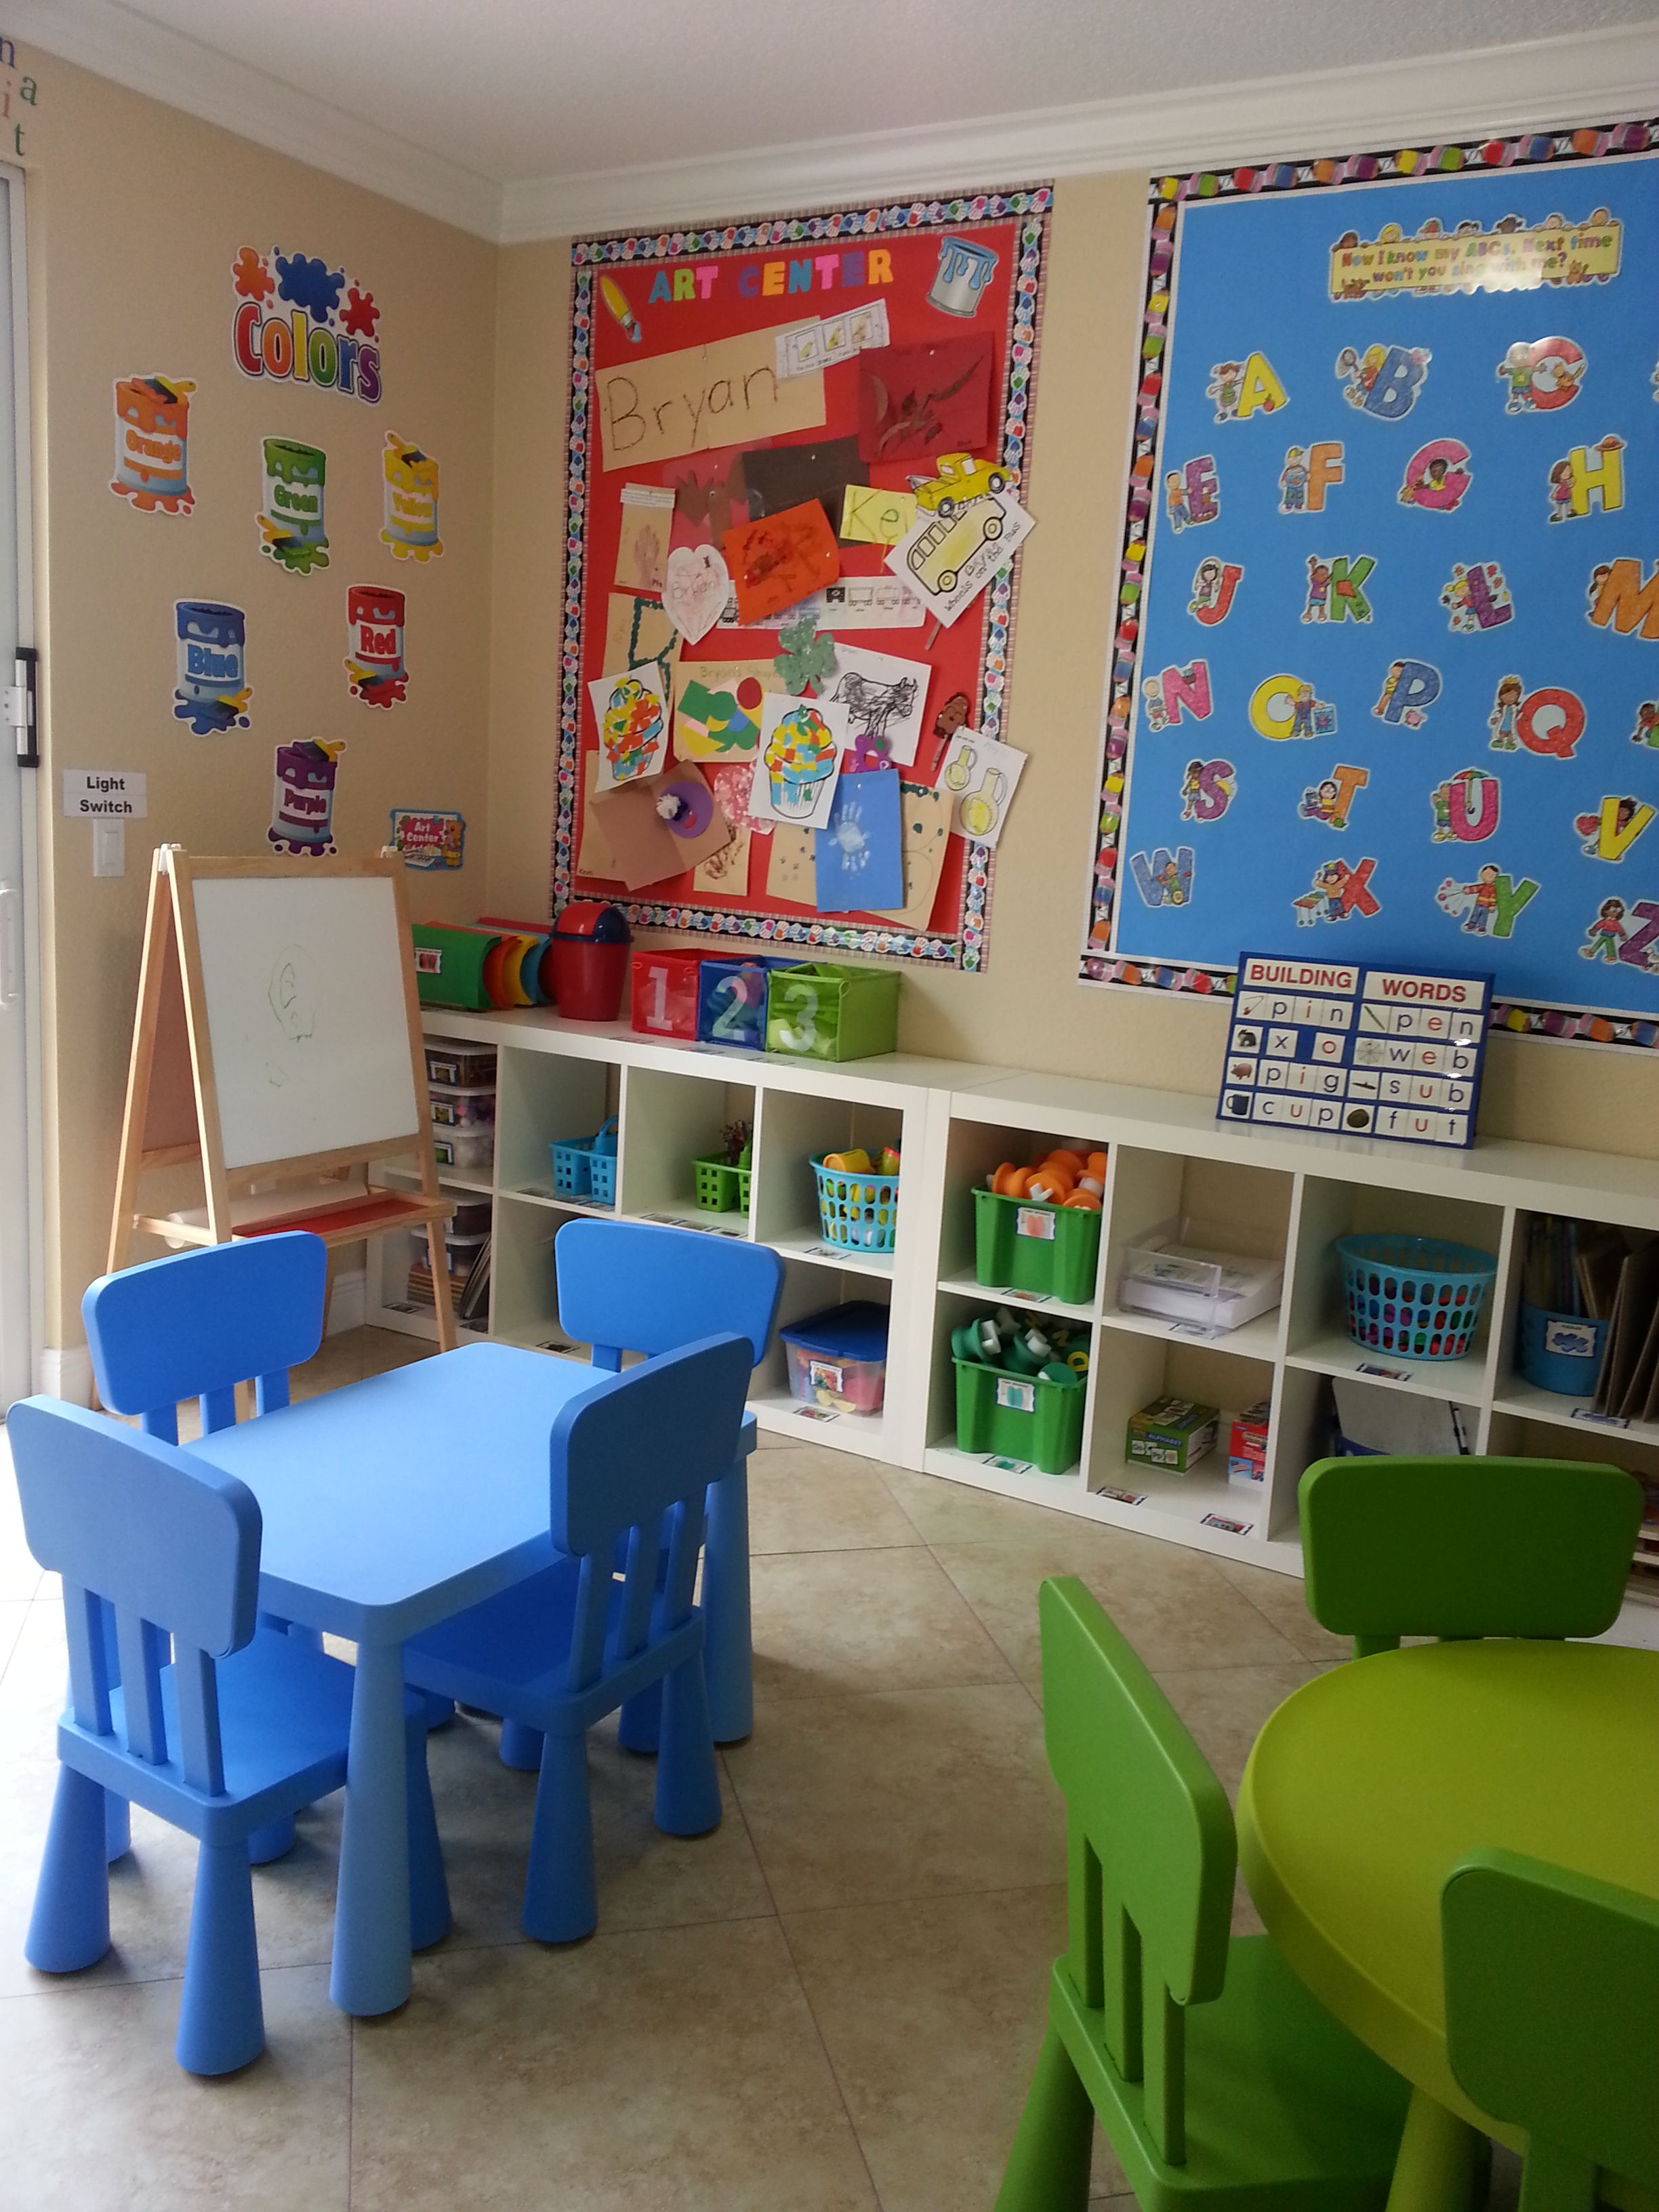 Pre School Child Care Center Lobby Office Ideas: Two Small Tables? HOME DAYCARE IDEAS/ The Kids Place